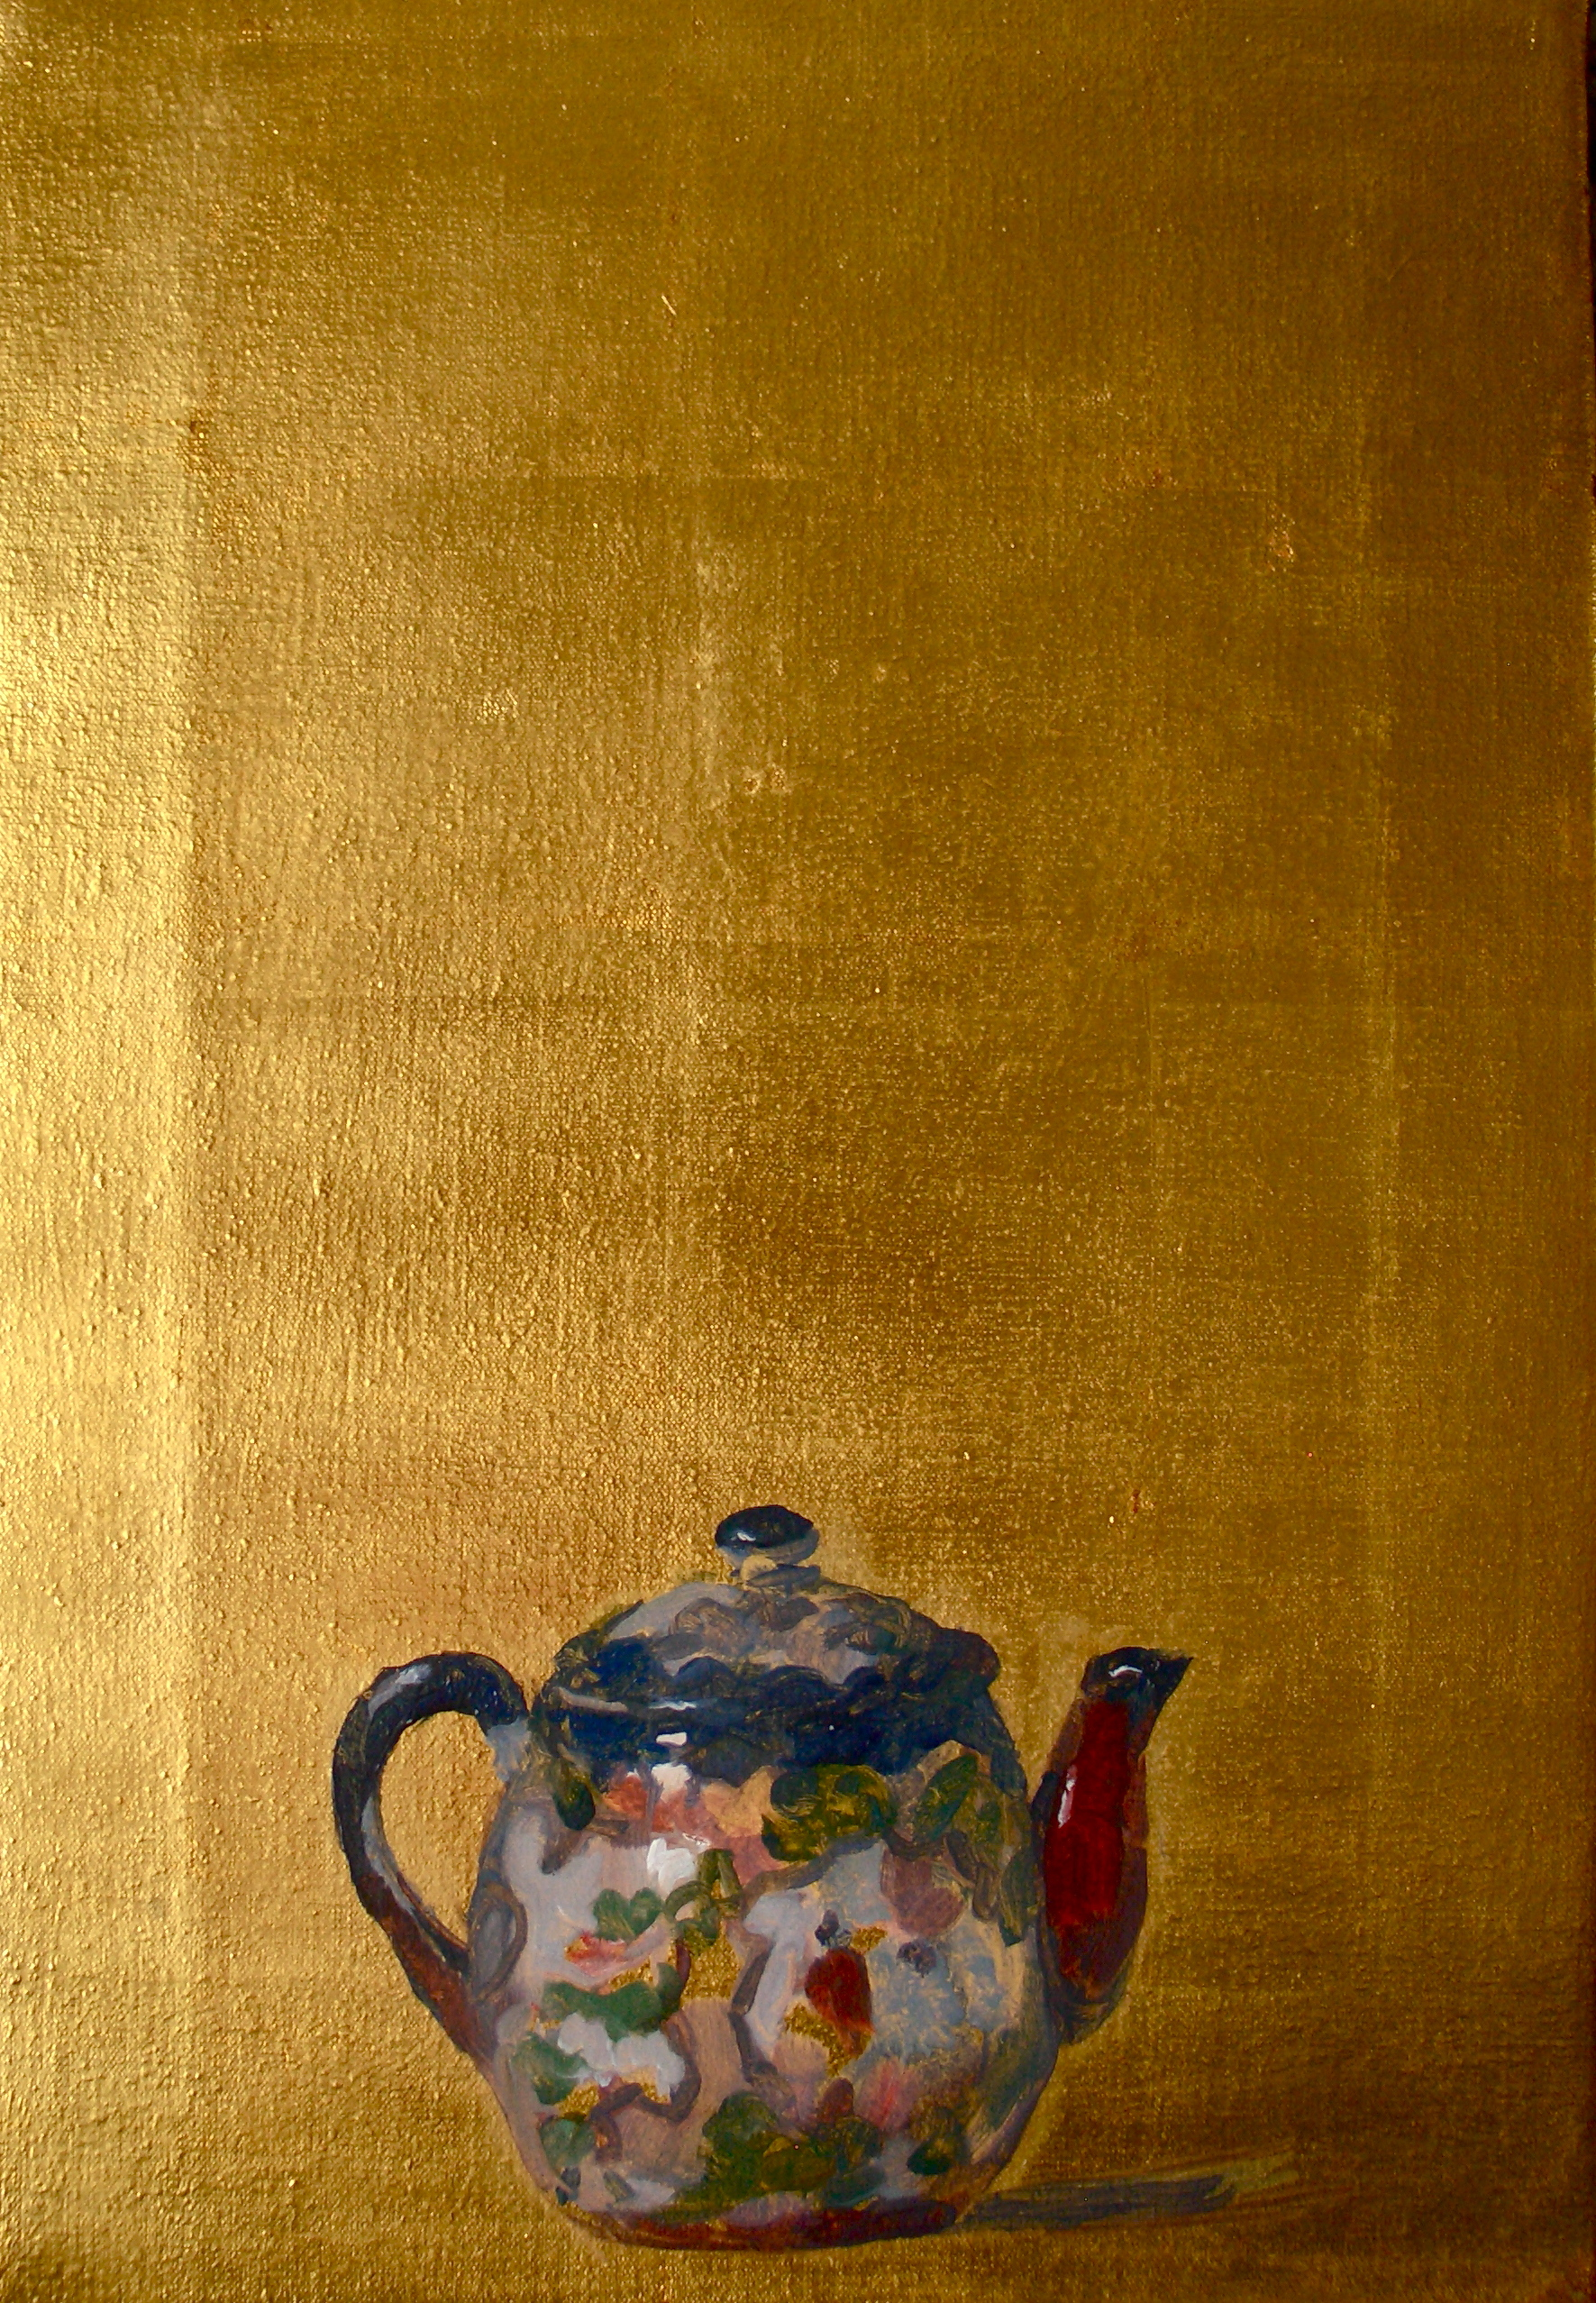 Teapot on gold